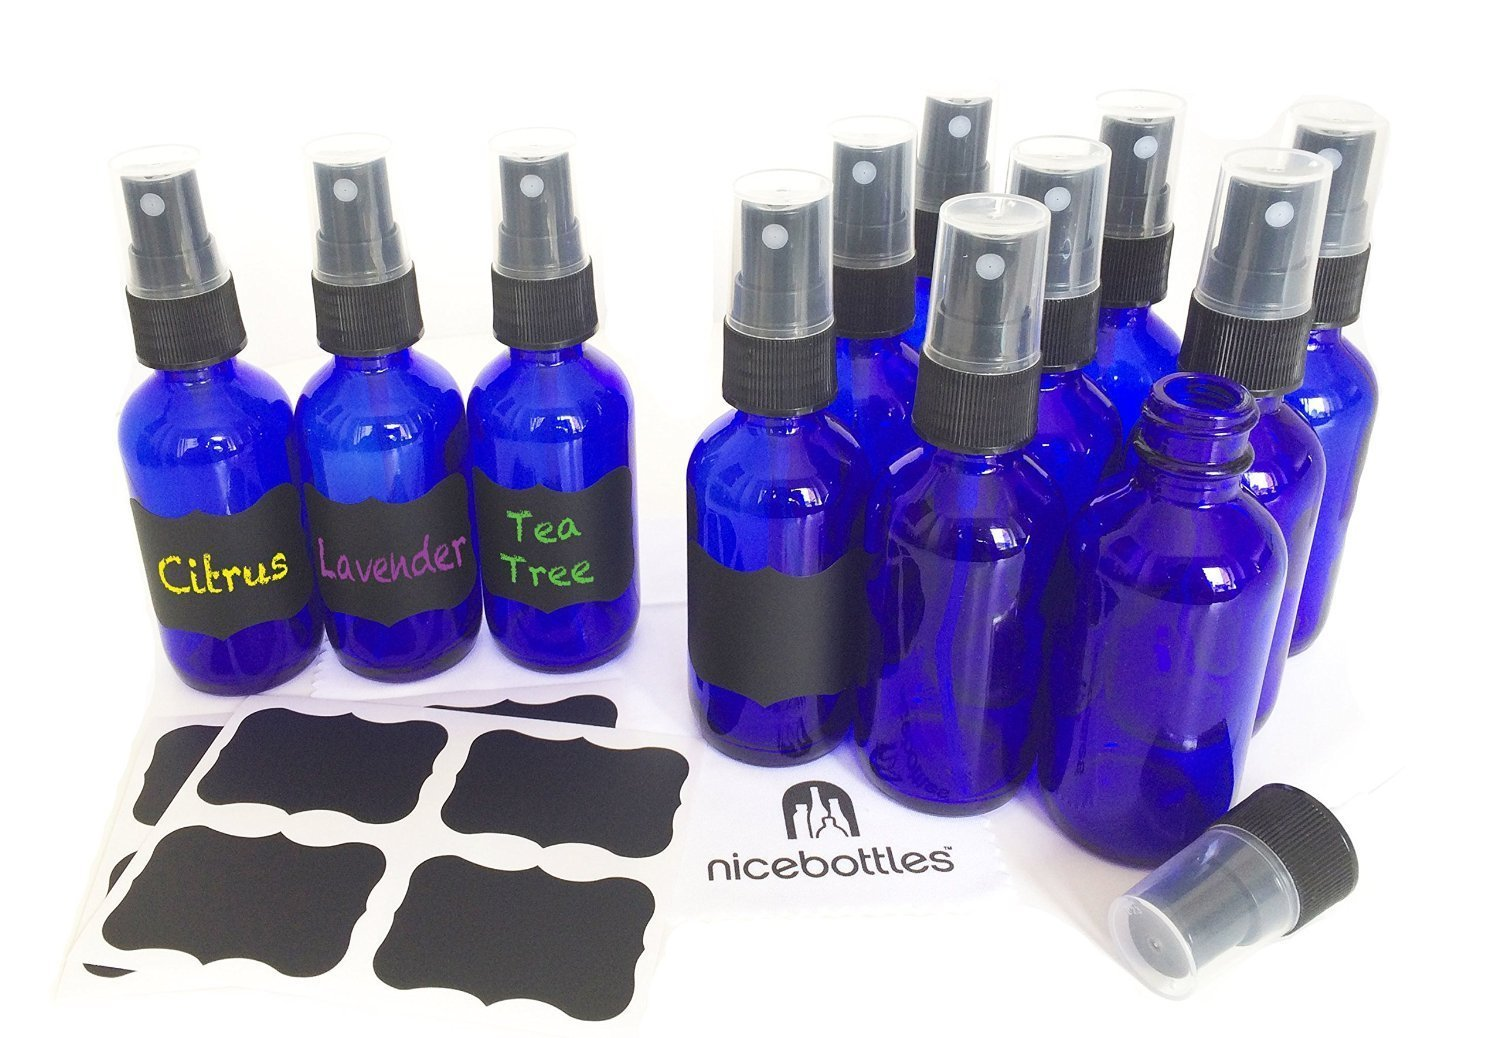 Glass Spray Bottles, 2 Oz Cobalt Blue Boston Round with Fine Mist Sprayer & Chalkboard Labels - Pack of 12 by nicebottles